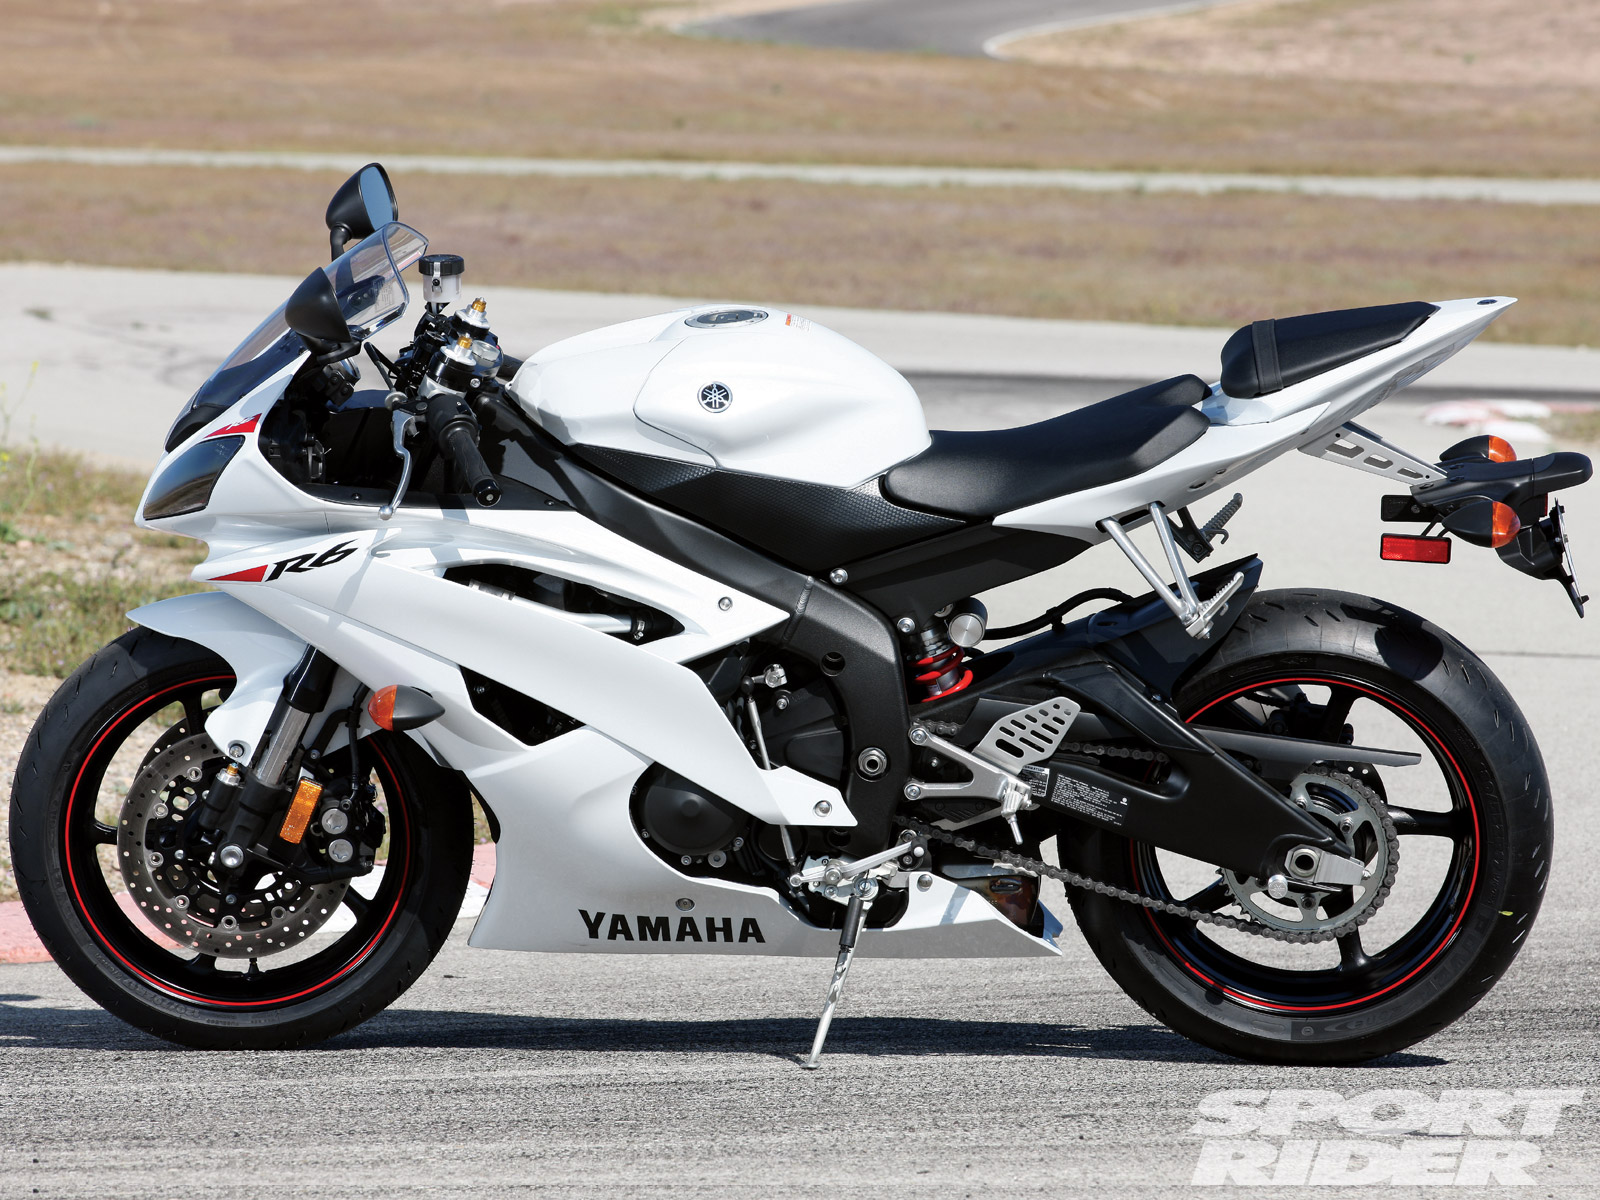 Yamaha Why 2010 #7